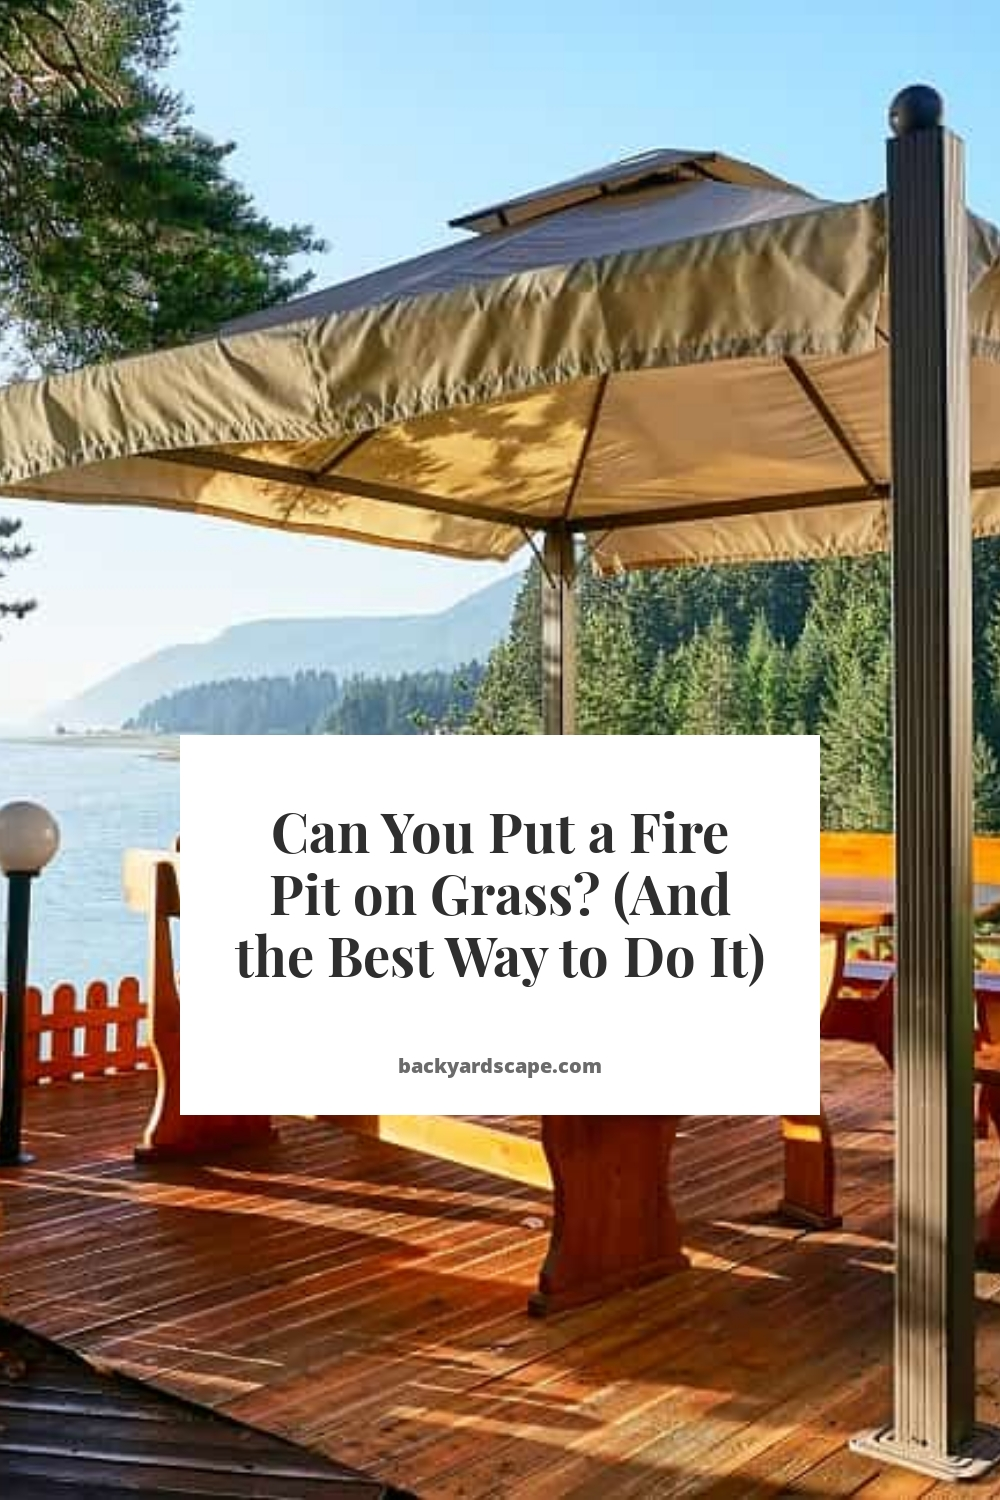 Can You Put a Fire Pit on Grass? (And the Best Way to Do It)